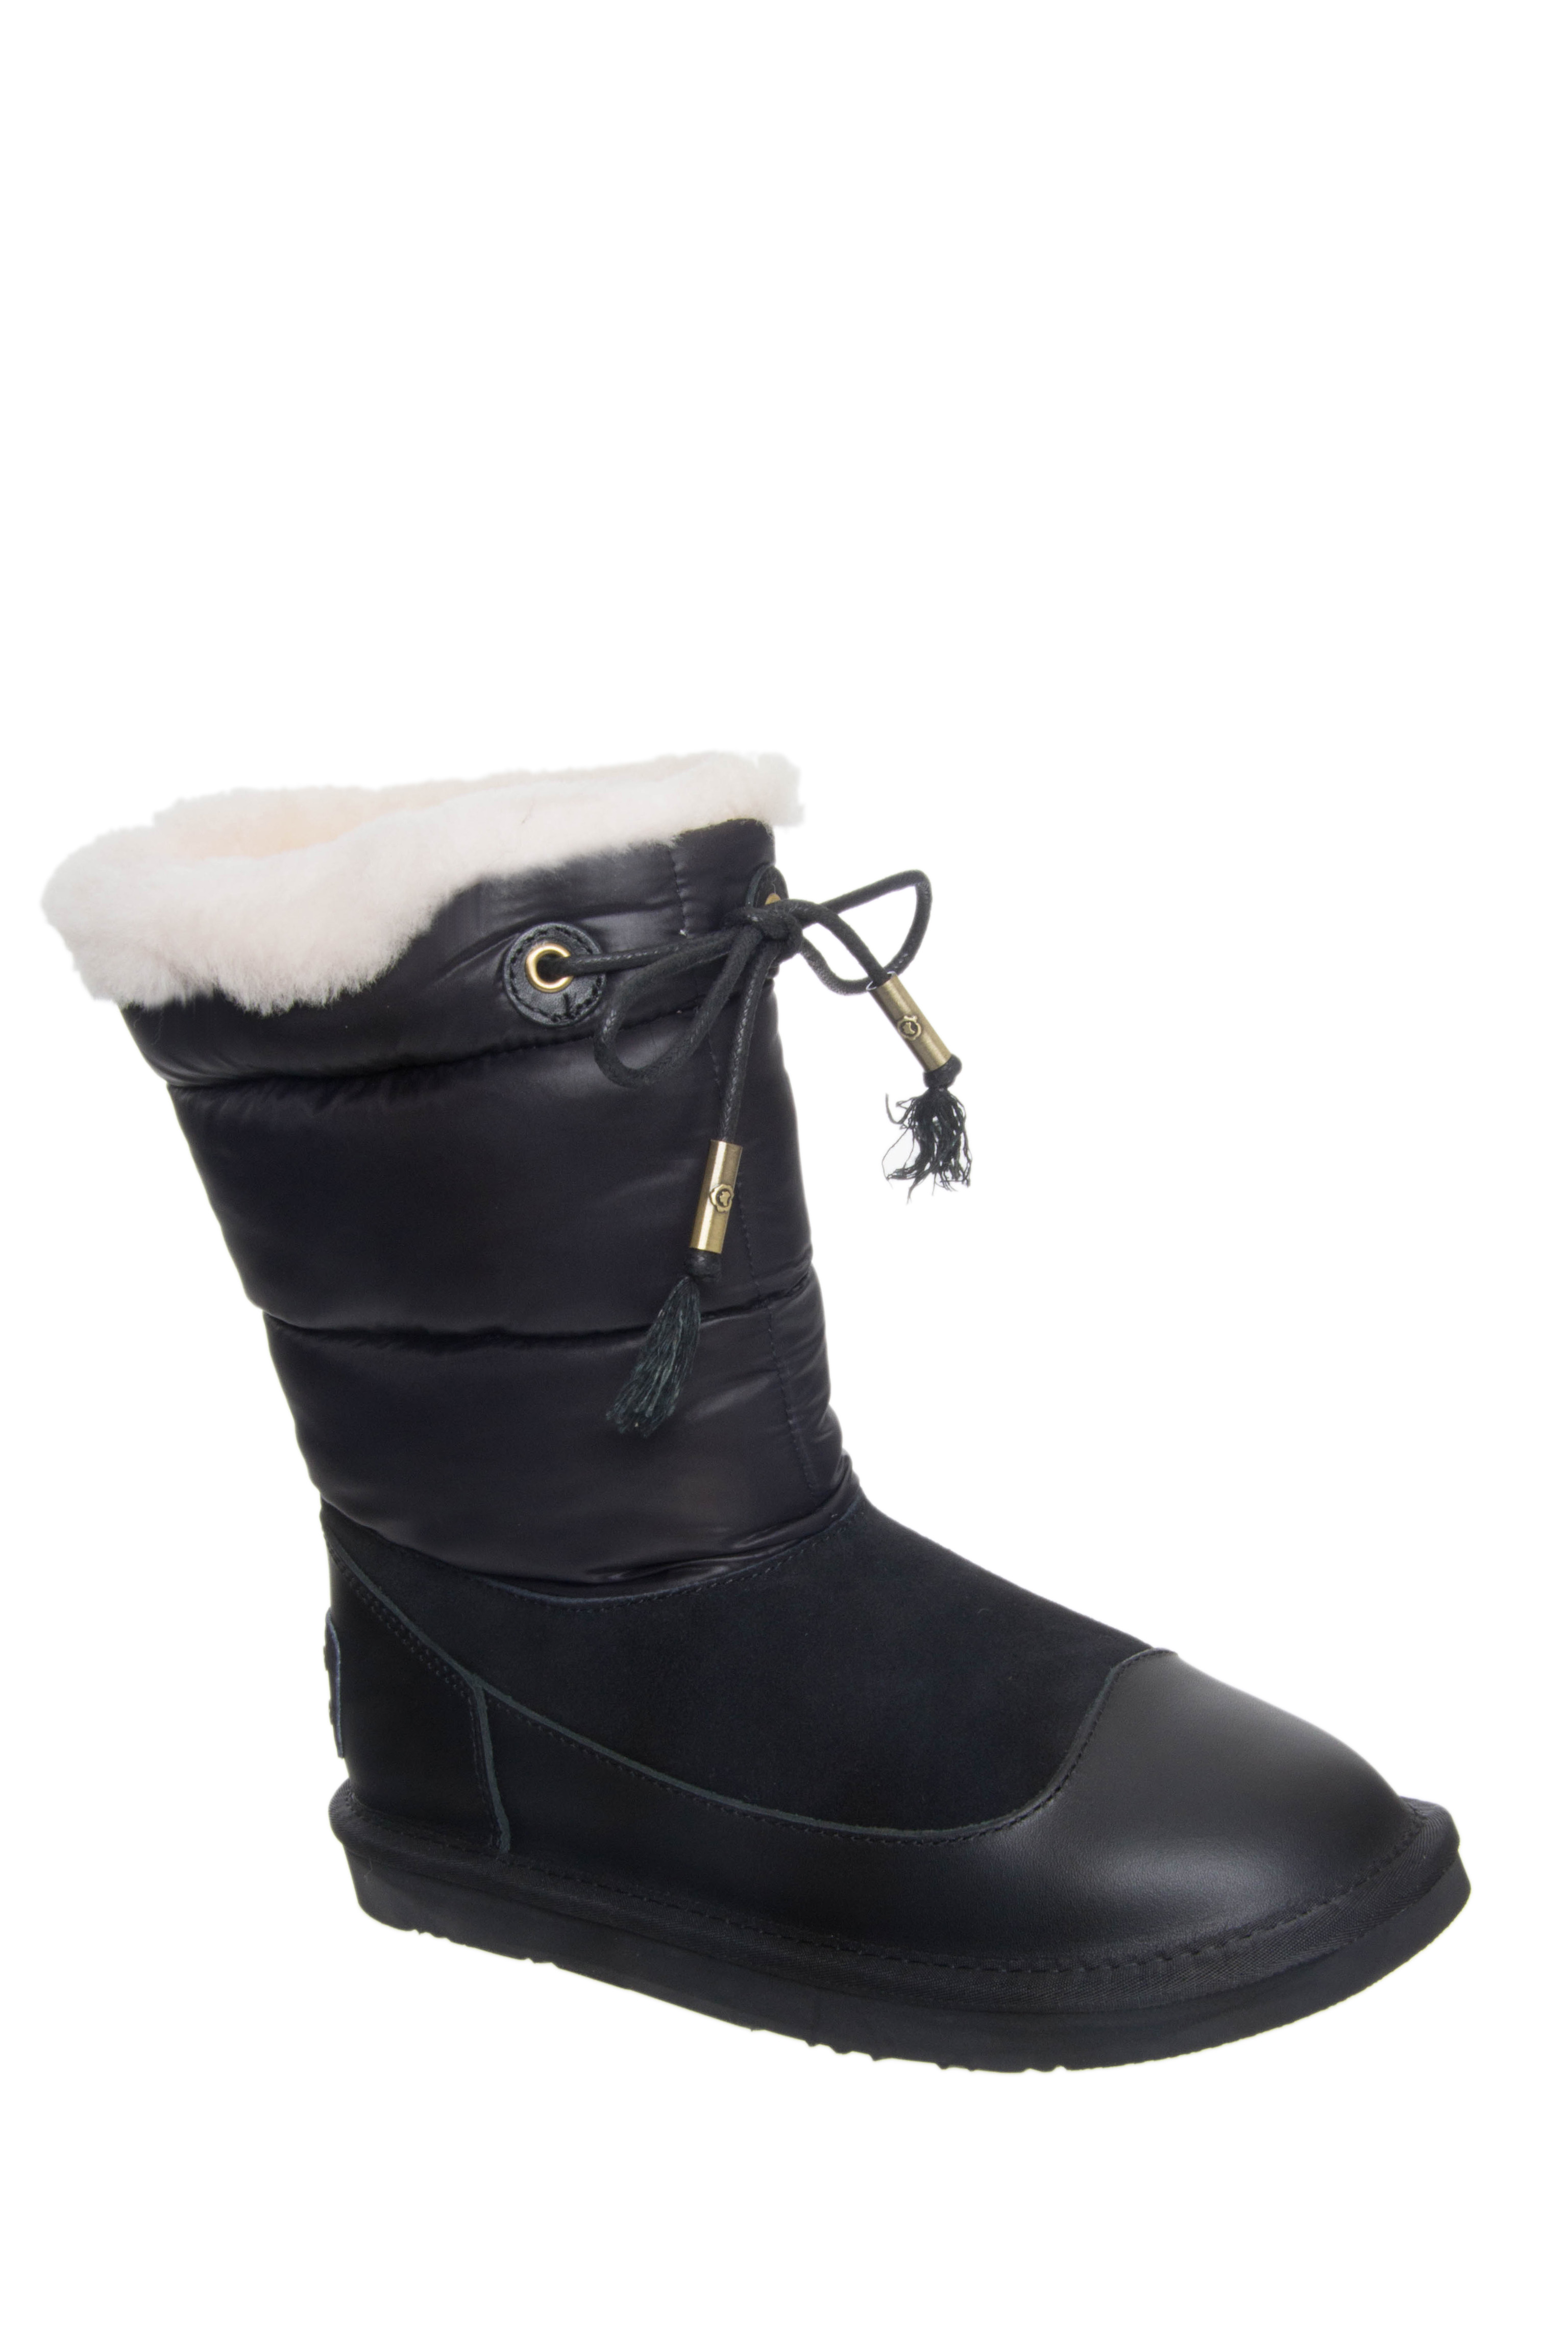 Australia Luxe Earth Nylon Short Boots - Black